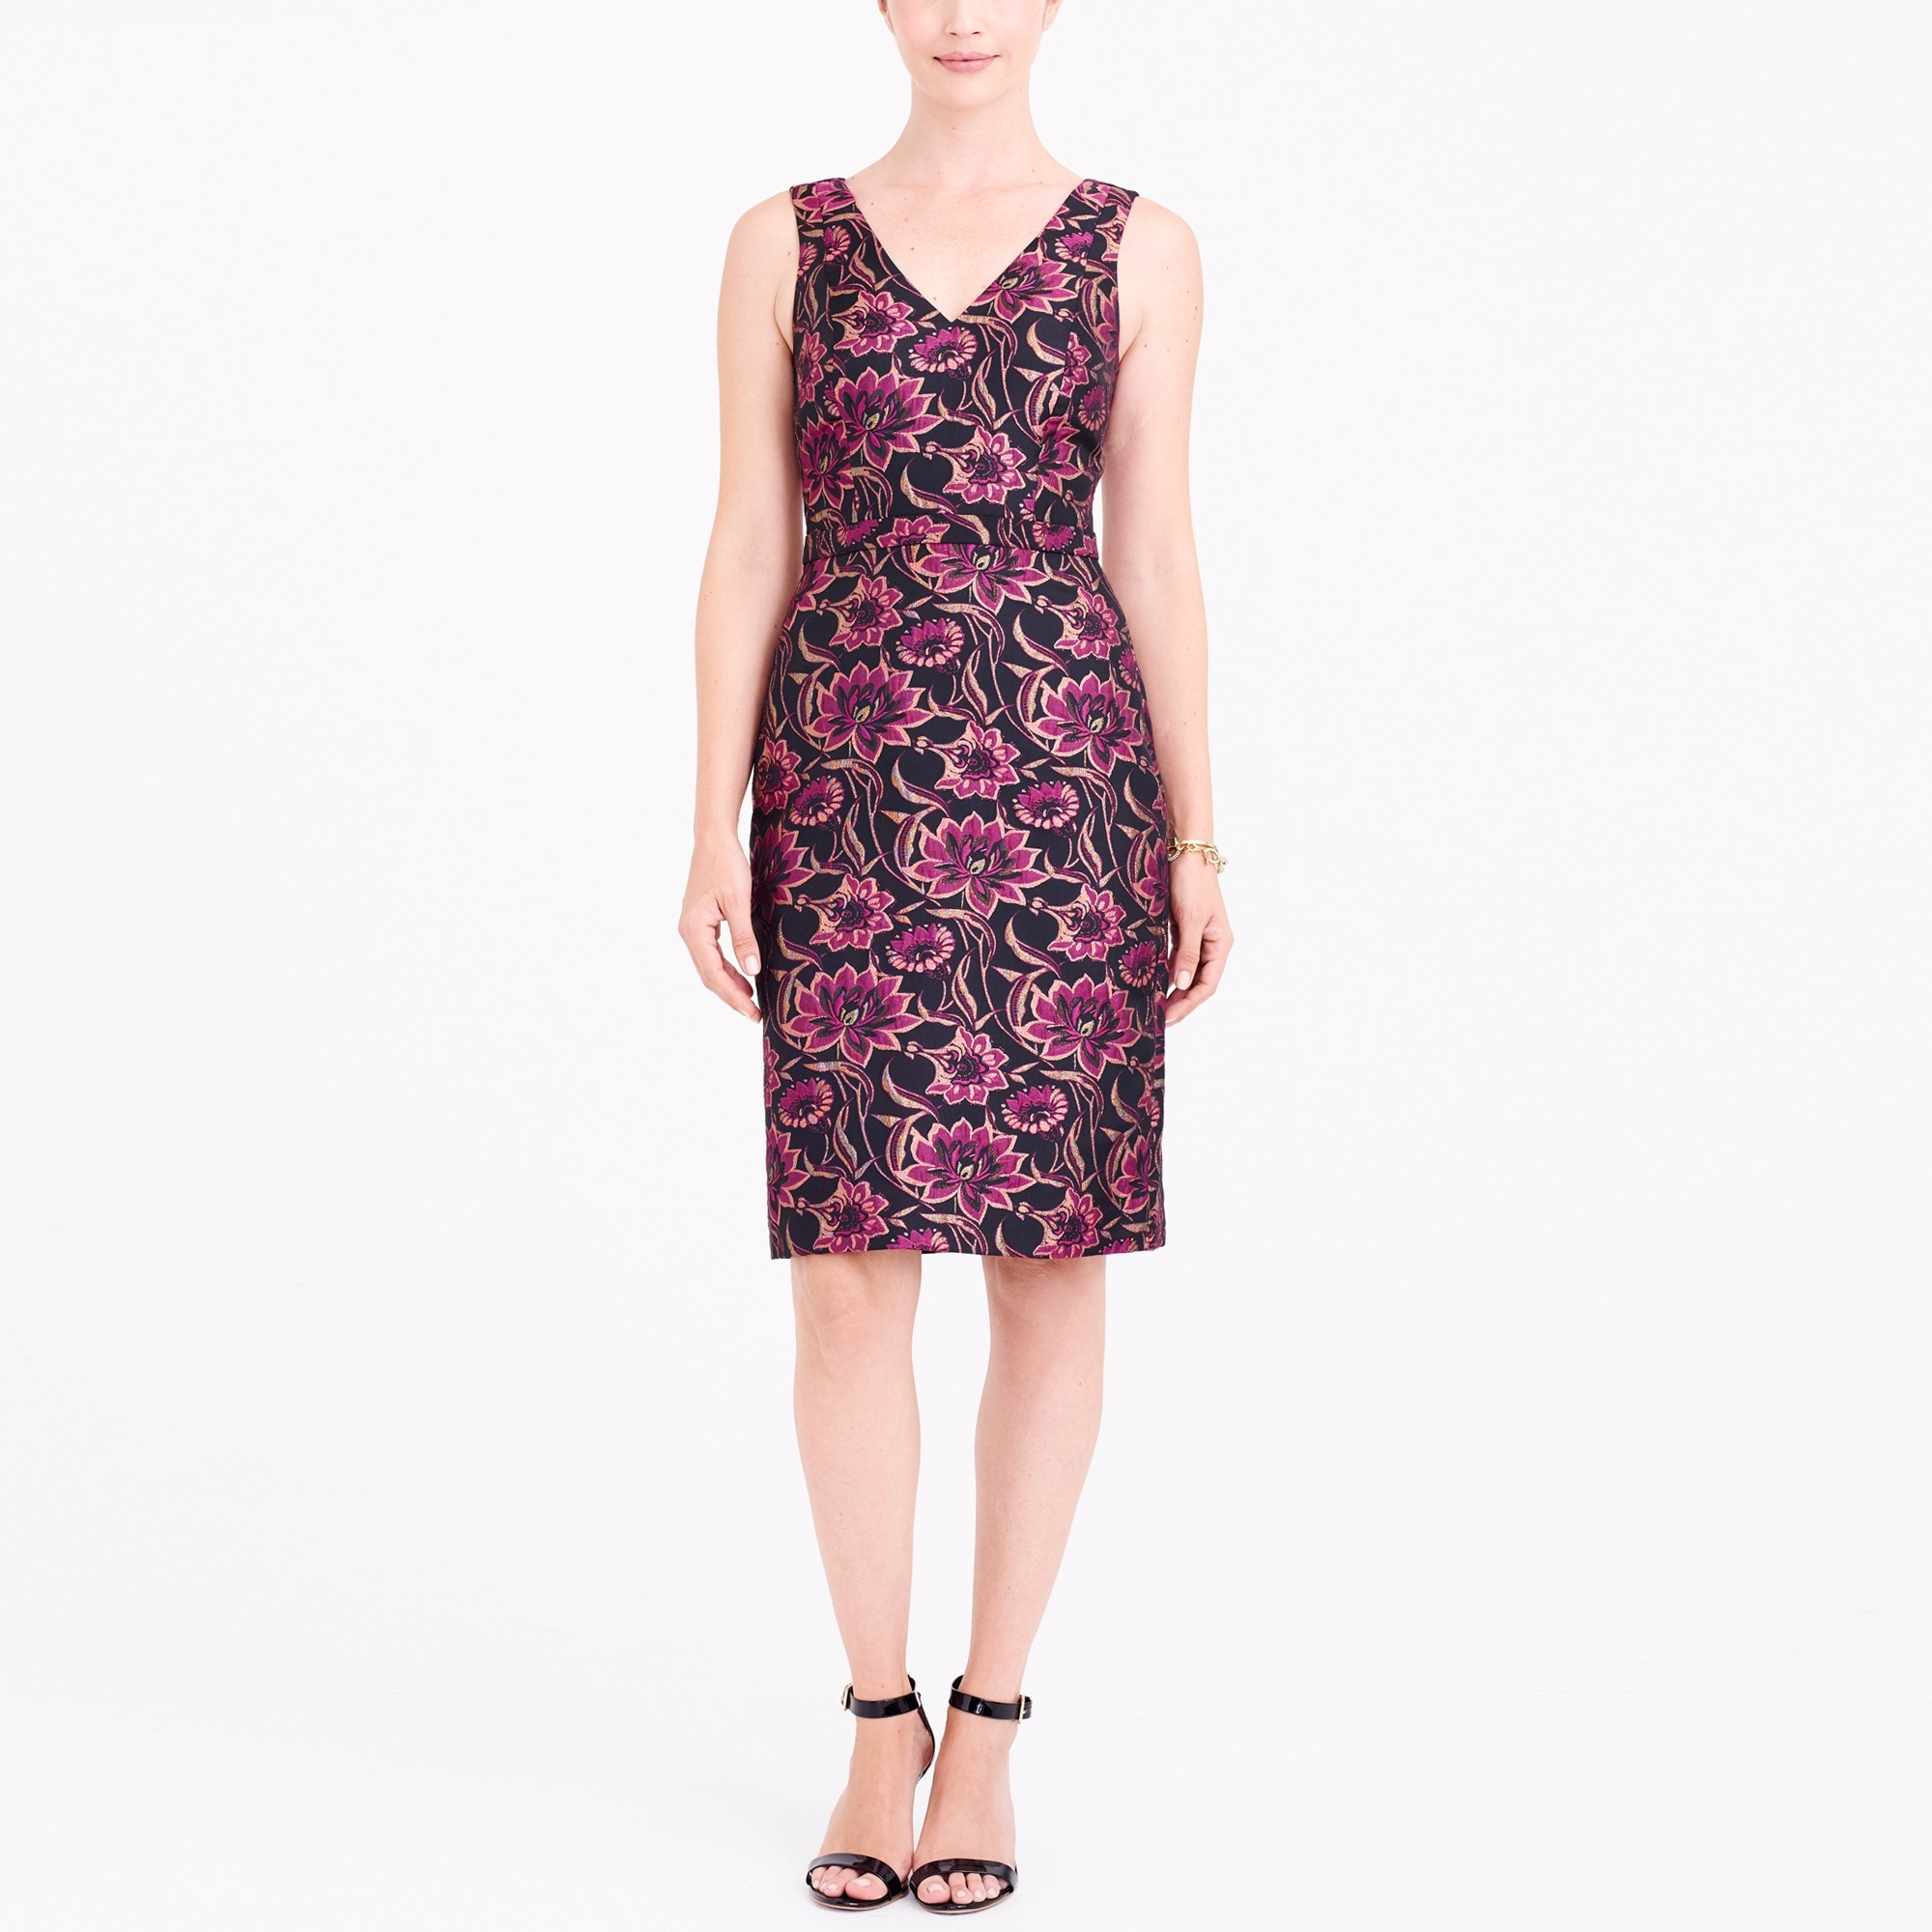 jacquard v-neck dress : factorywomen party